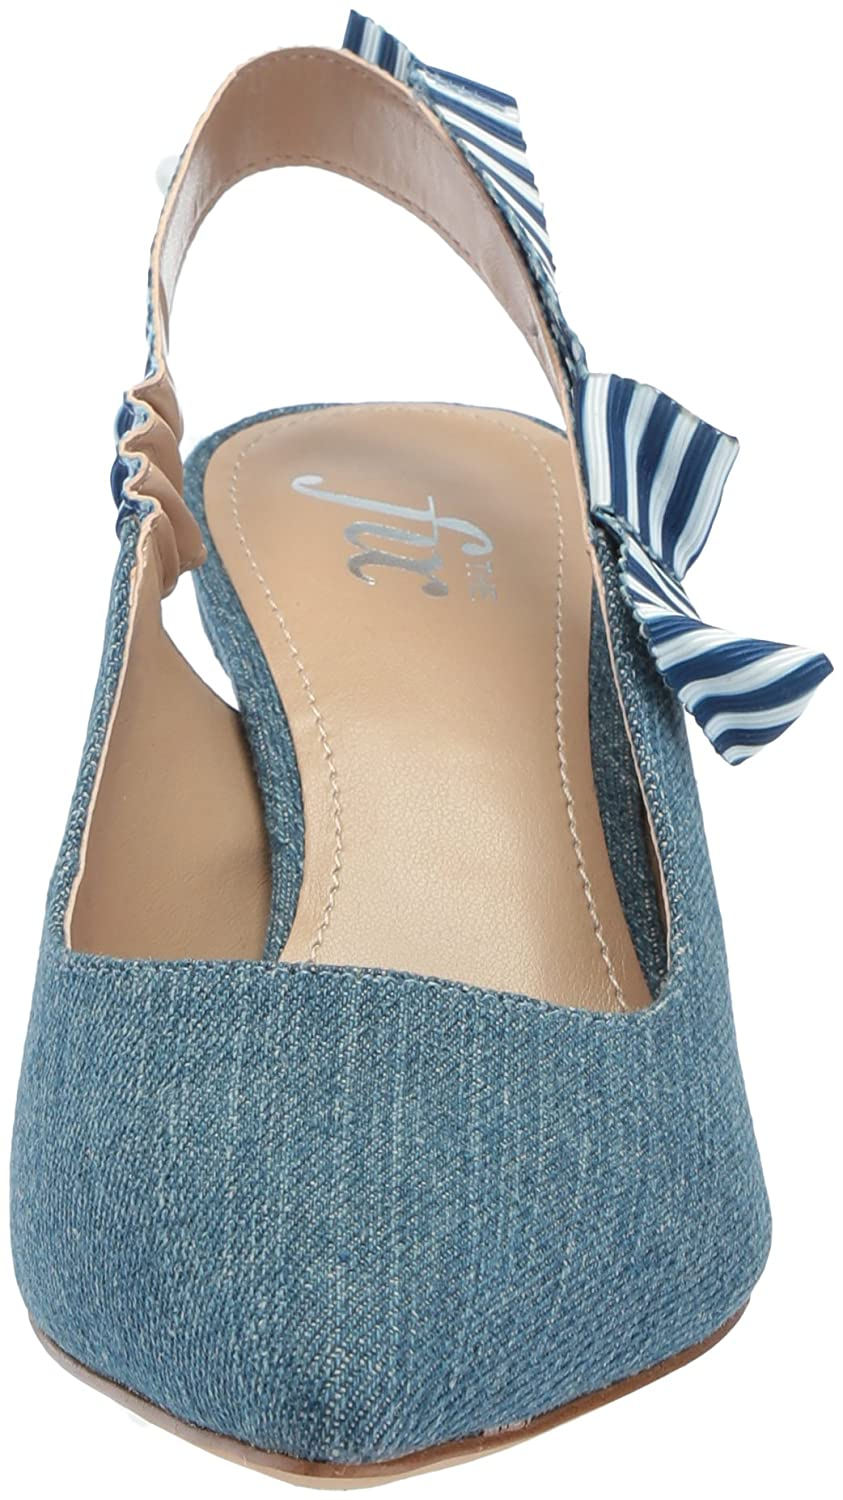 The Fix Women's Fatina Kitten Heel Slingback Pump B076ZYH165 7 B(M) US|Denim Textile